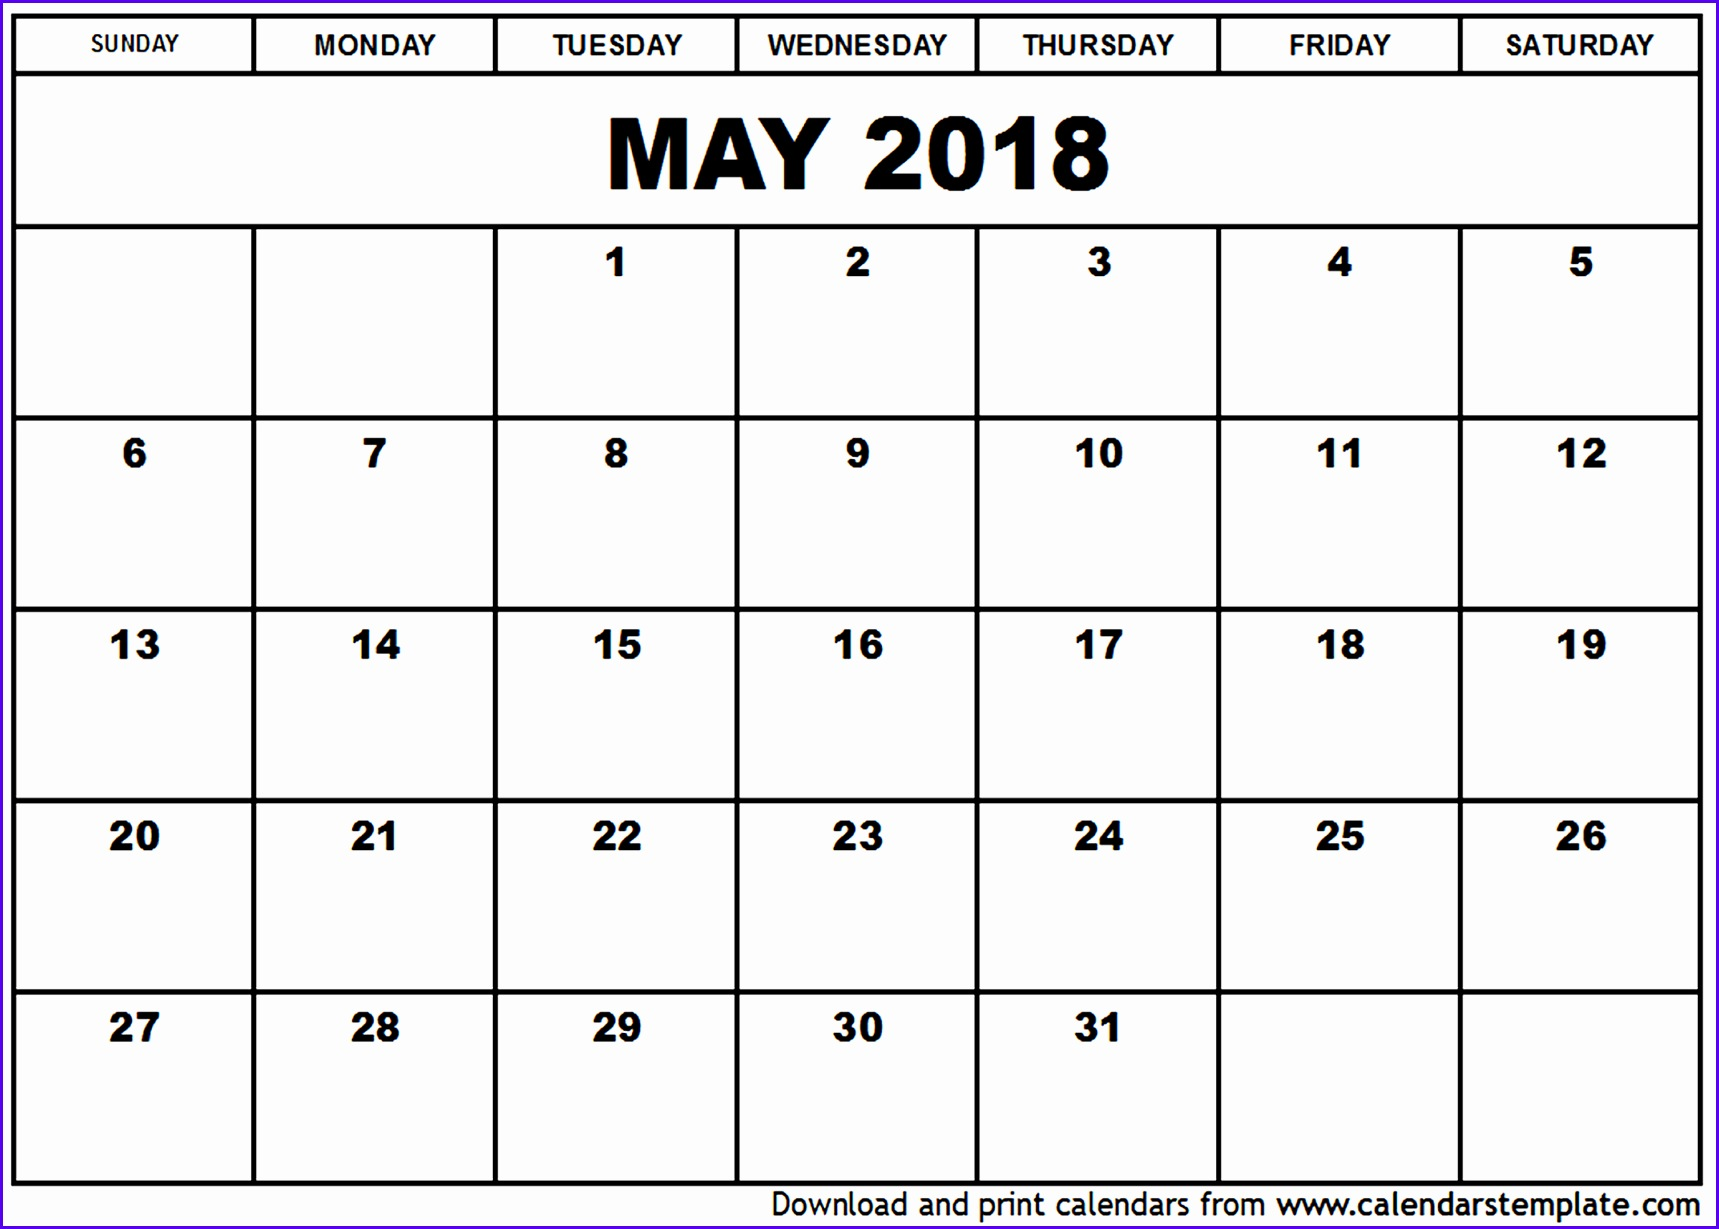 May 2018 Calendars for Word Excel & PDF 17191229